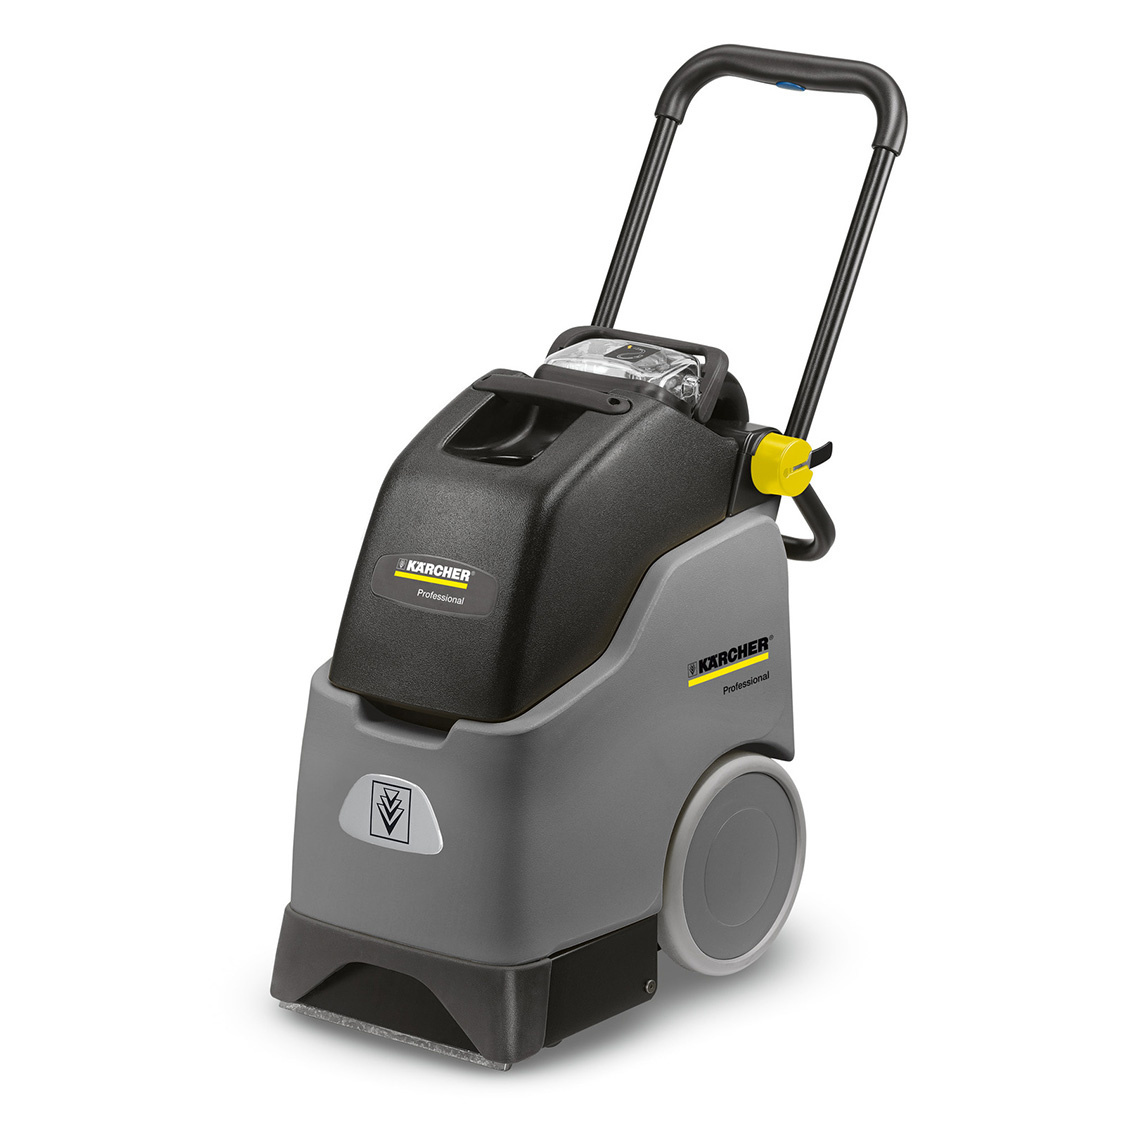 Karcher Image - 4 Gallon Carpet Extractor.jpg